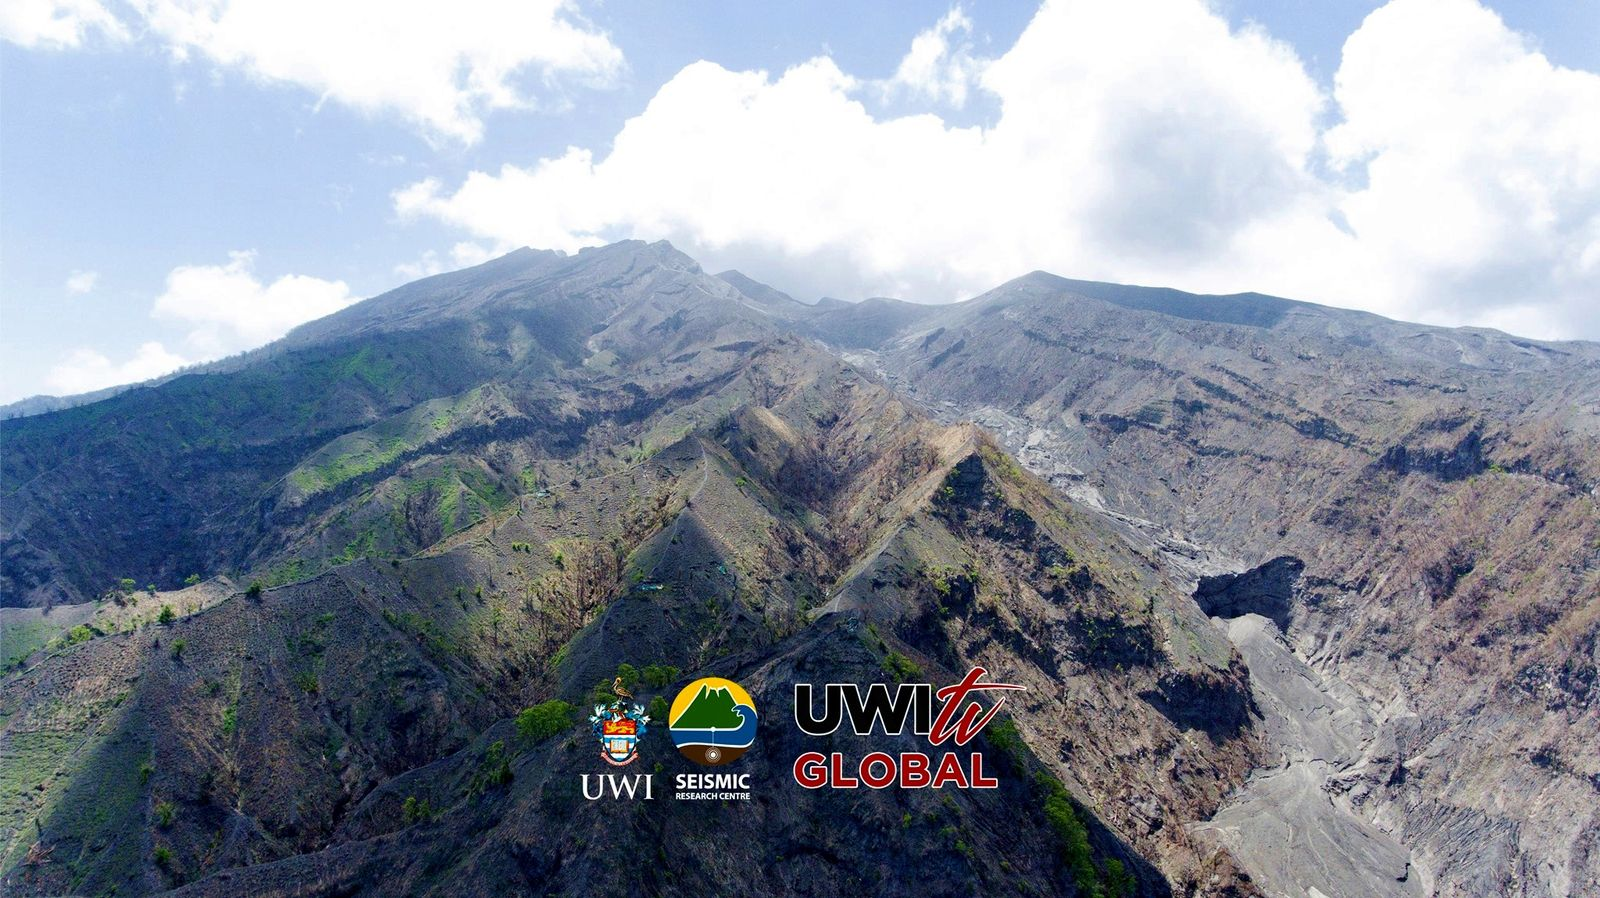 Soufrière de St. Vincent - The top of the volcano and the top of the Larakai valley filled with deposits. - photo Javid Collins, UWI-TV.